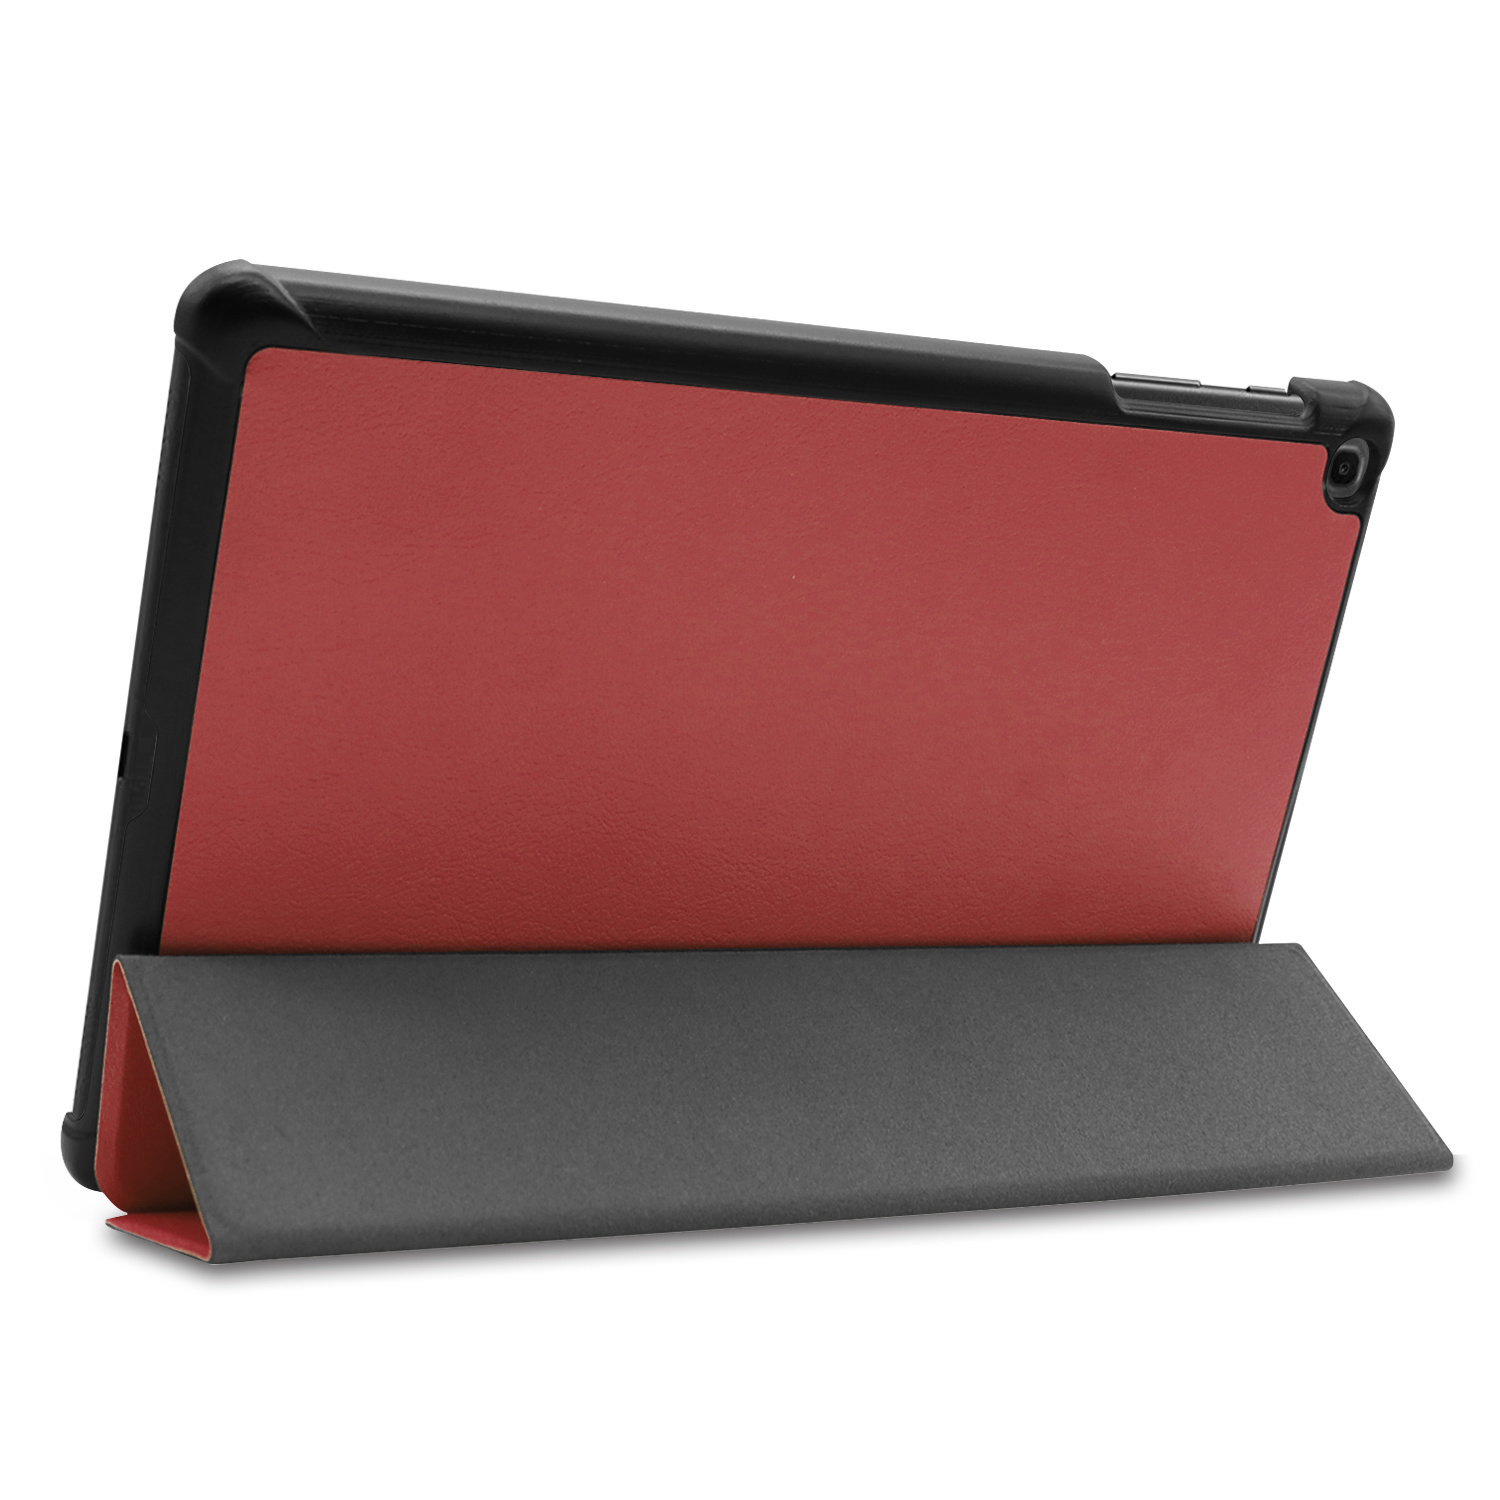 3-Vouw cover hoes voor de Samsung Galaxy Tab A 10.1 inch (2019) Bordeaux Rood